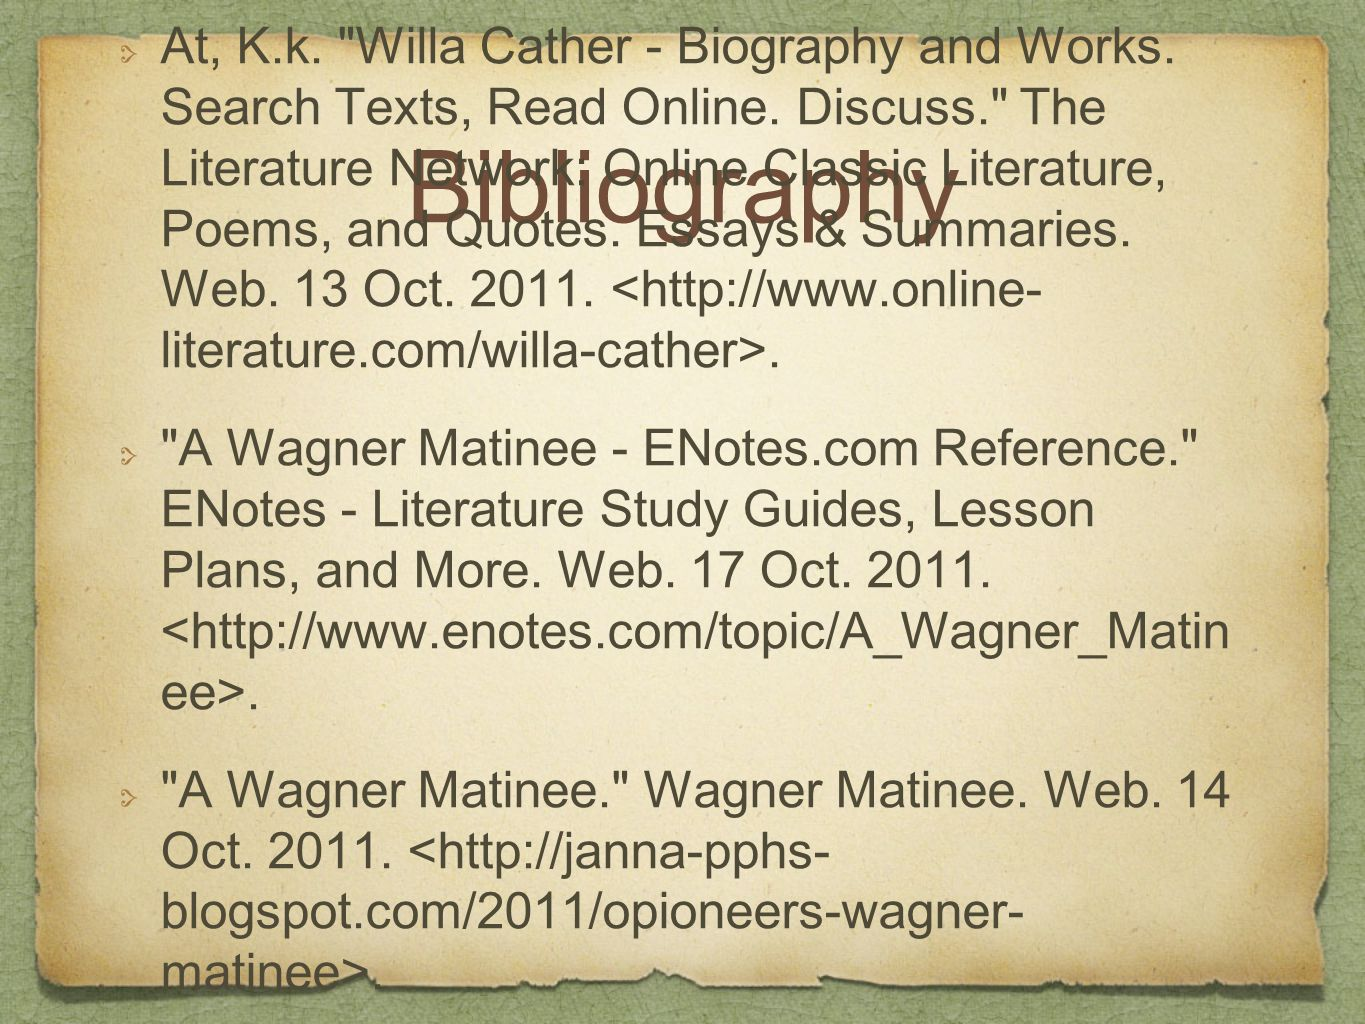 Bibliography At, K.k. Willa Cather - Biography and Works.